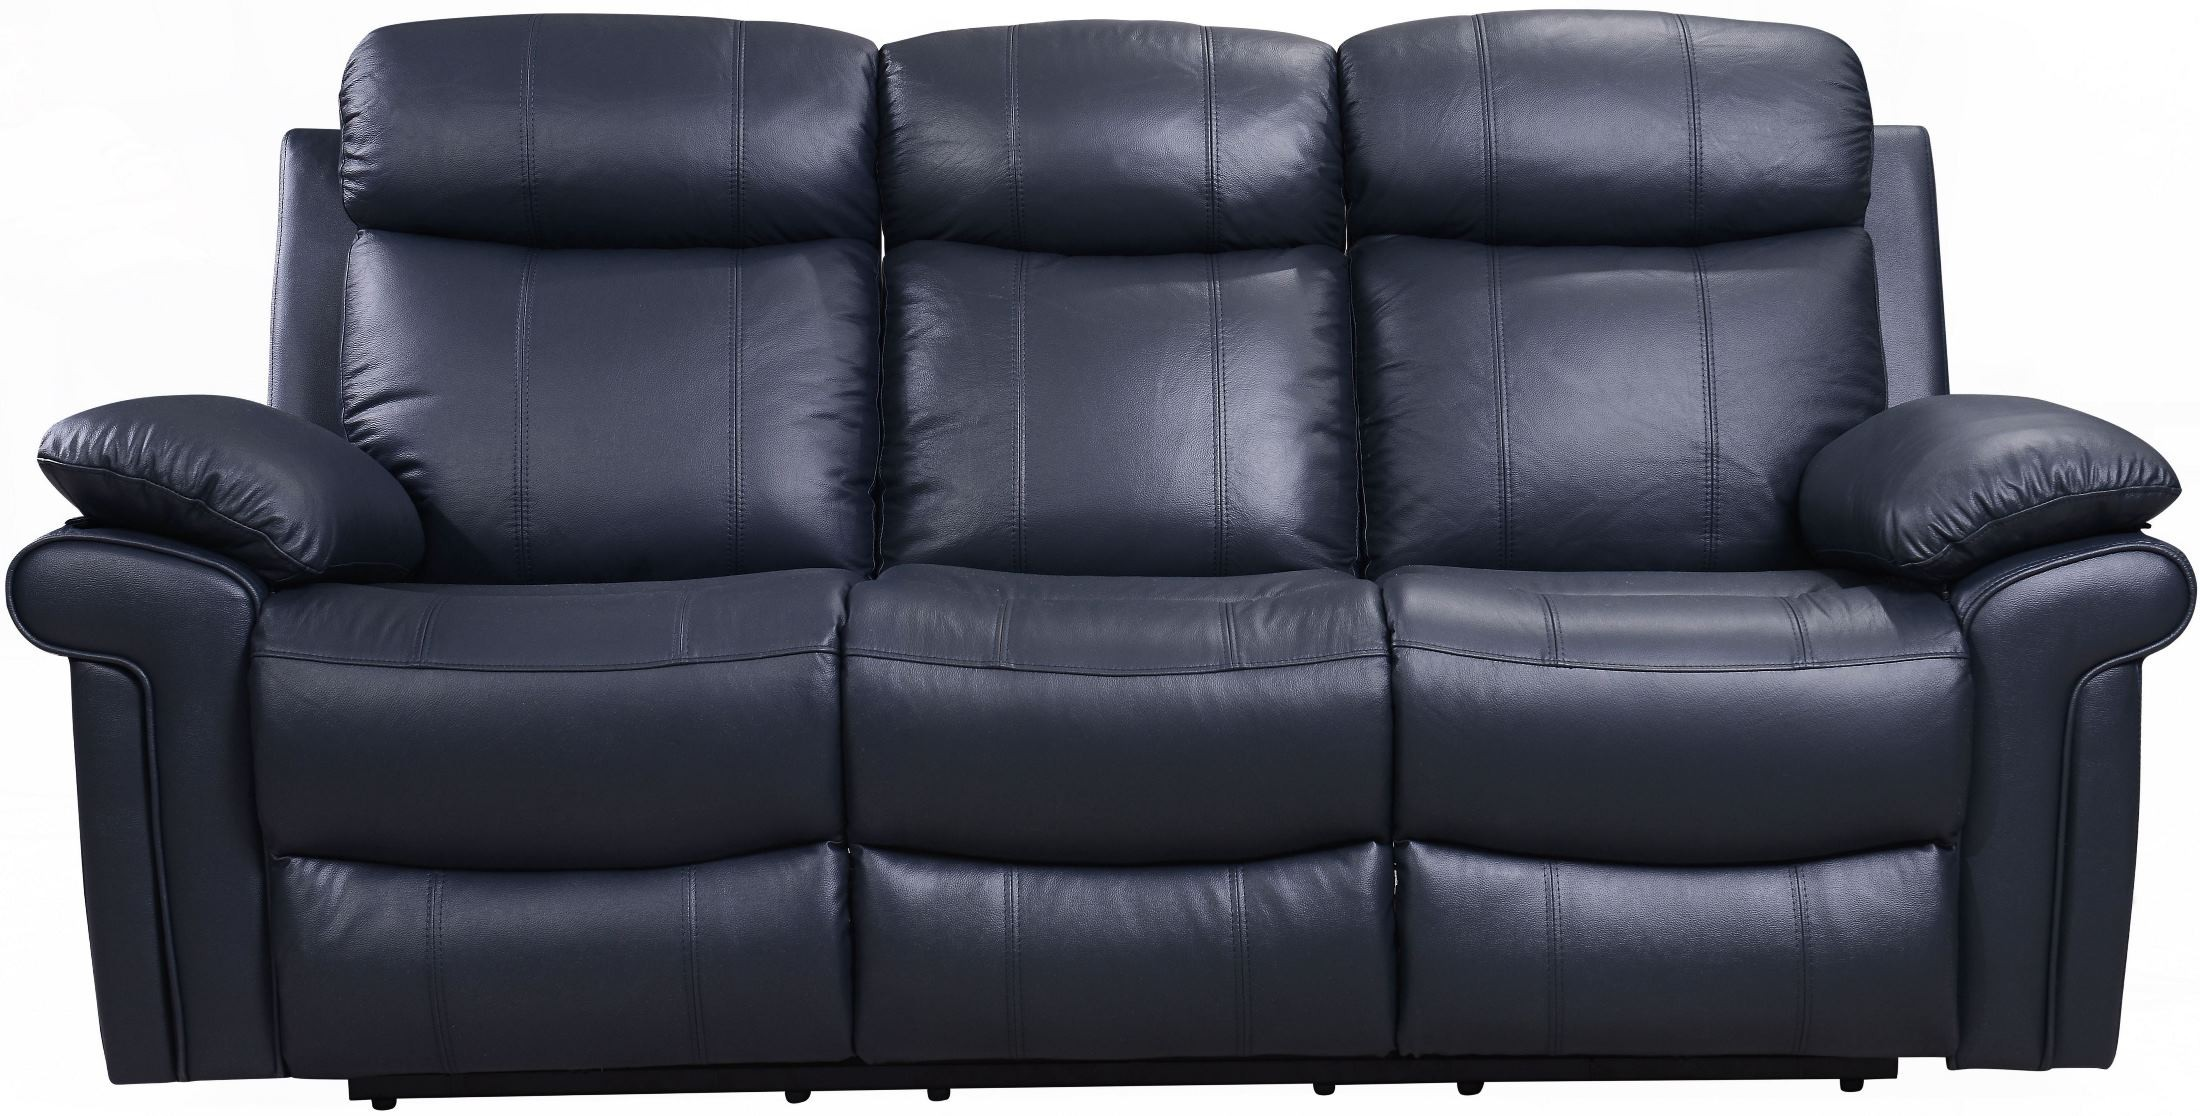 Shae joplin blue leather power reclining sofa 1555 e2117 for Blue leather sofa